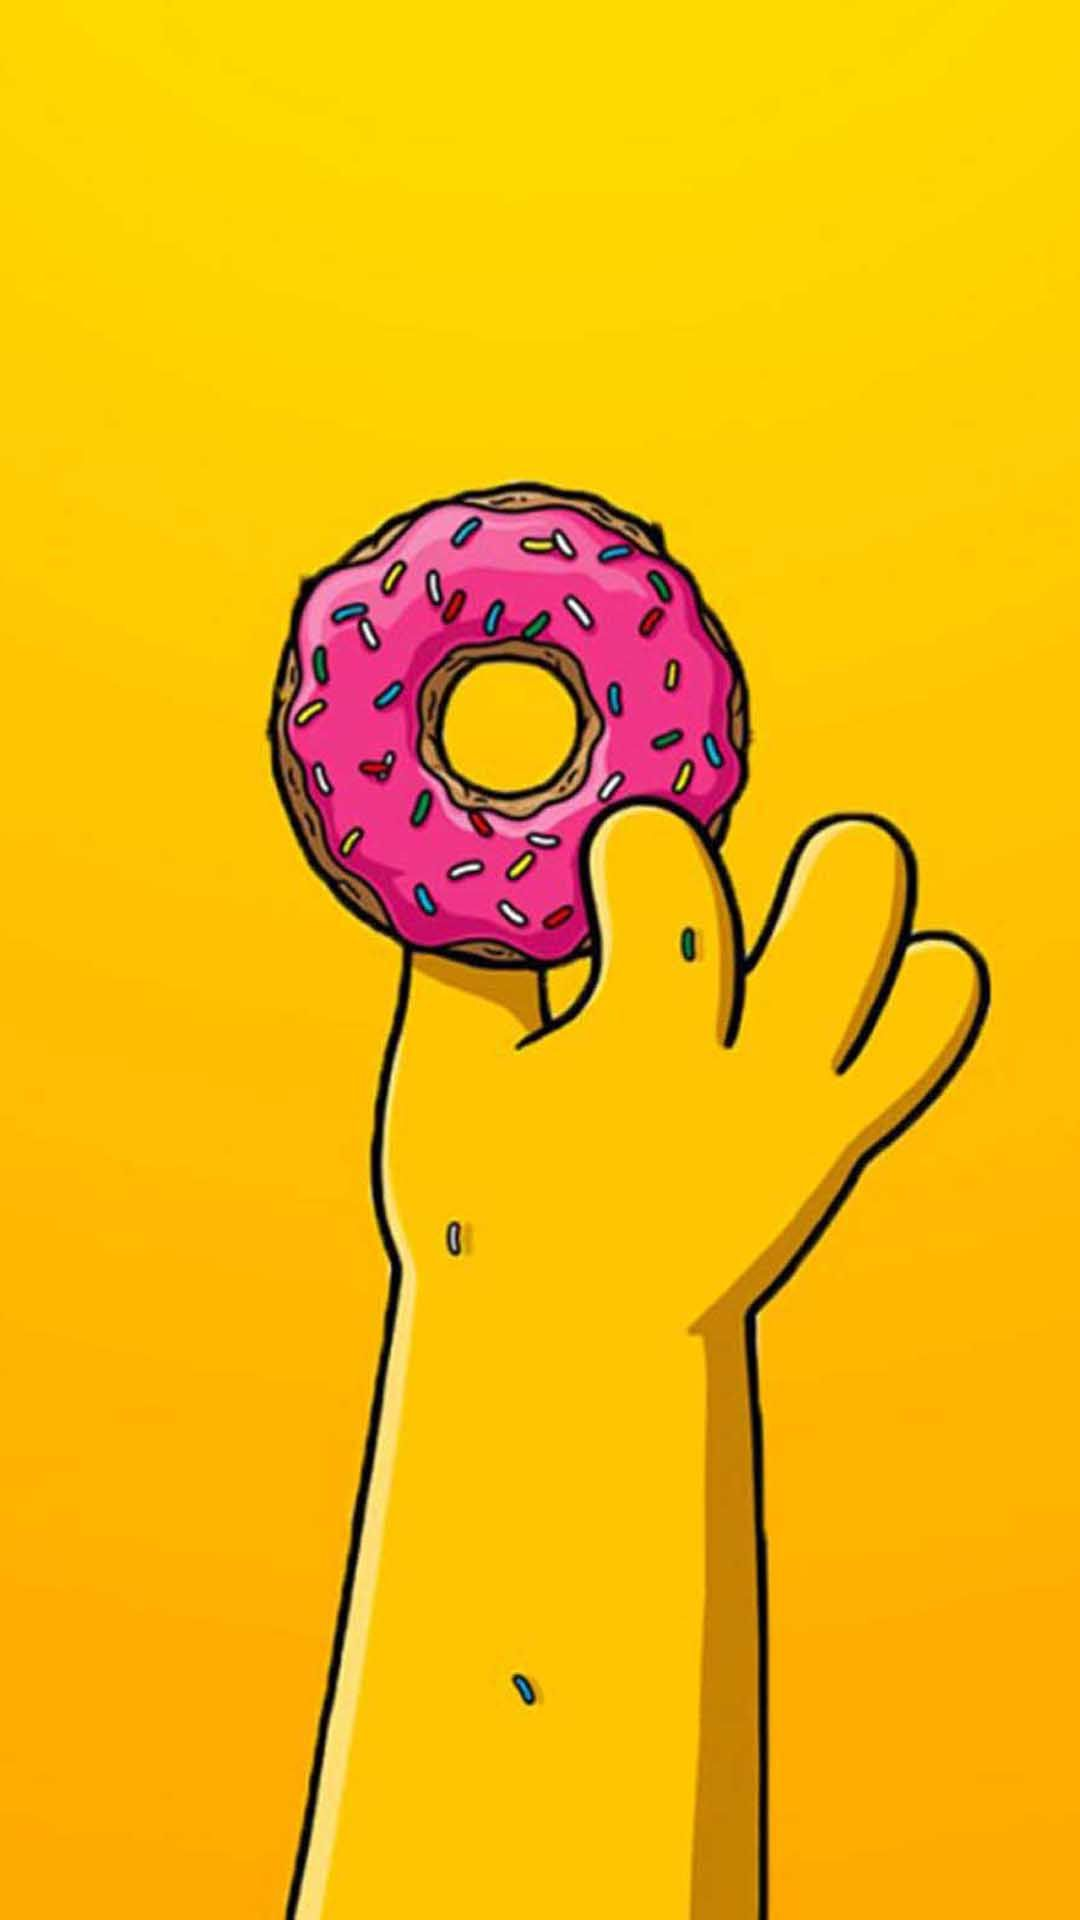 1080x1920 Homer Simpson Wallpaper for iPhone X, 8, 7, 6 - Free ...